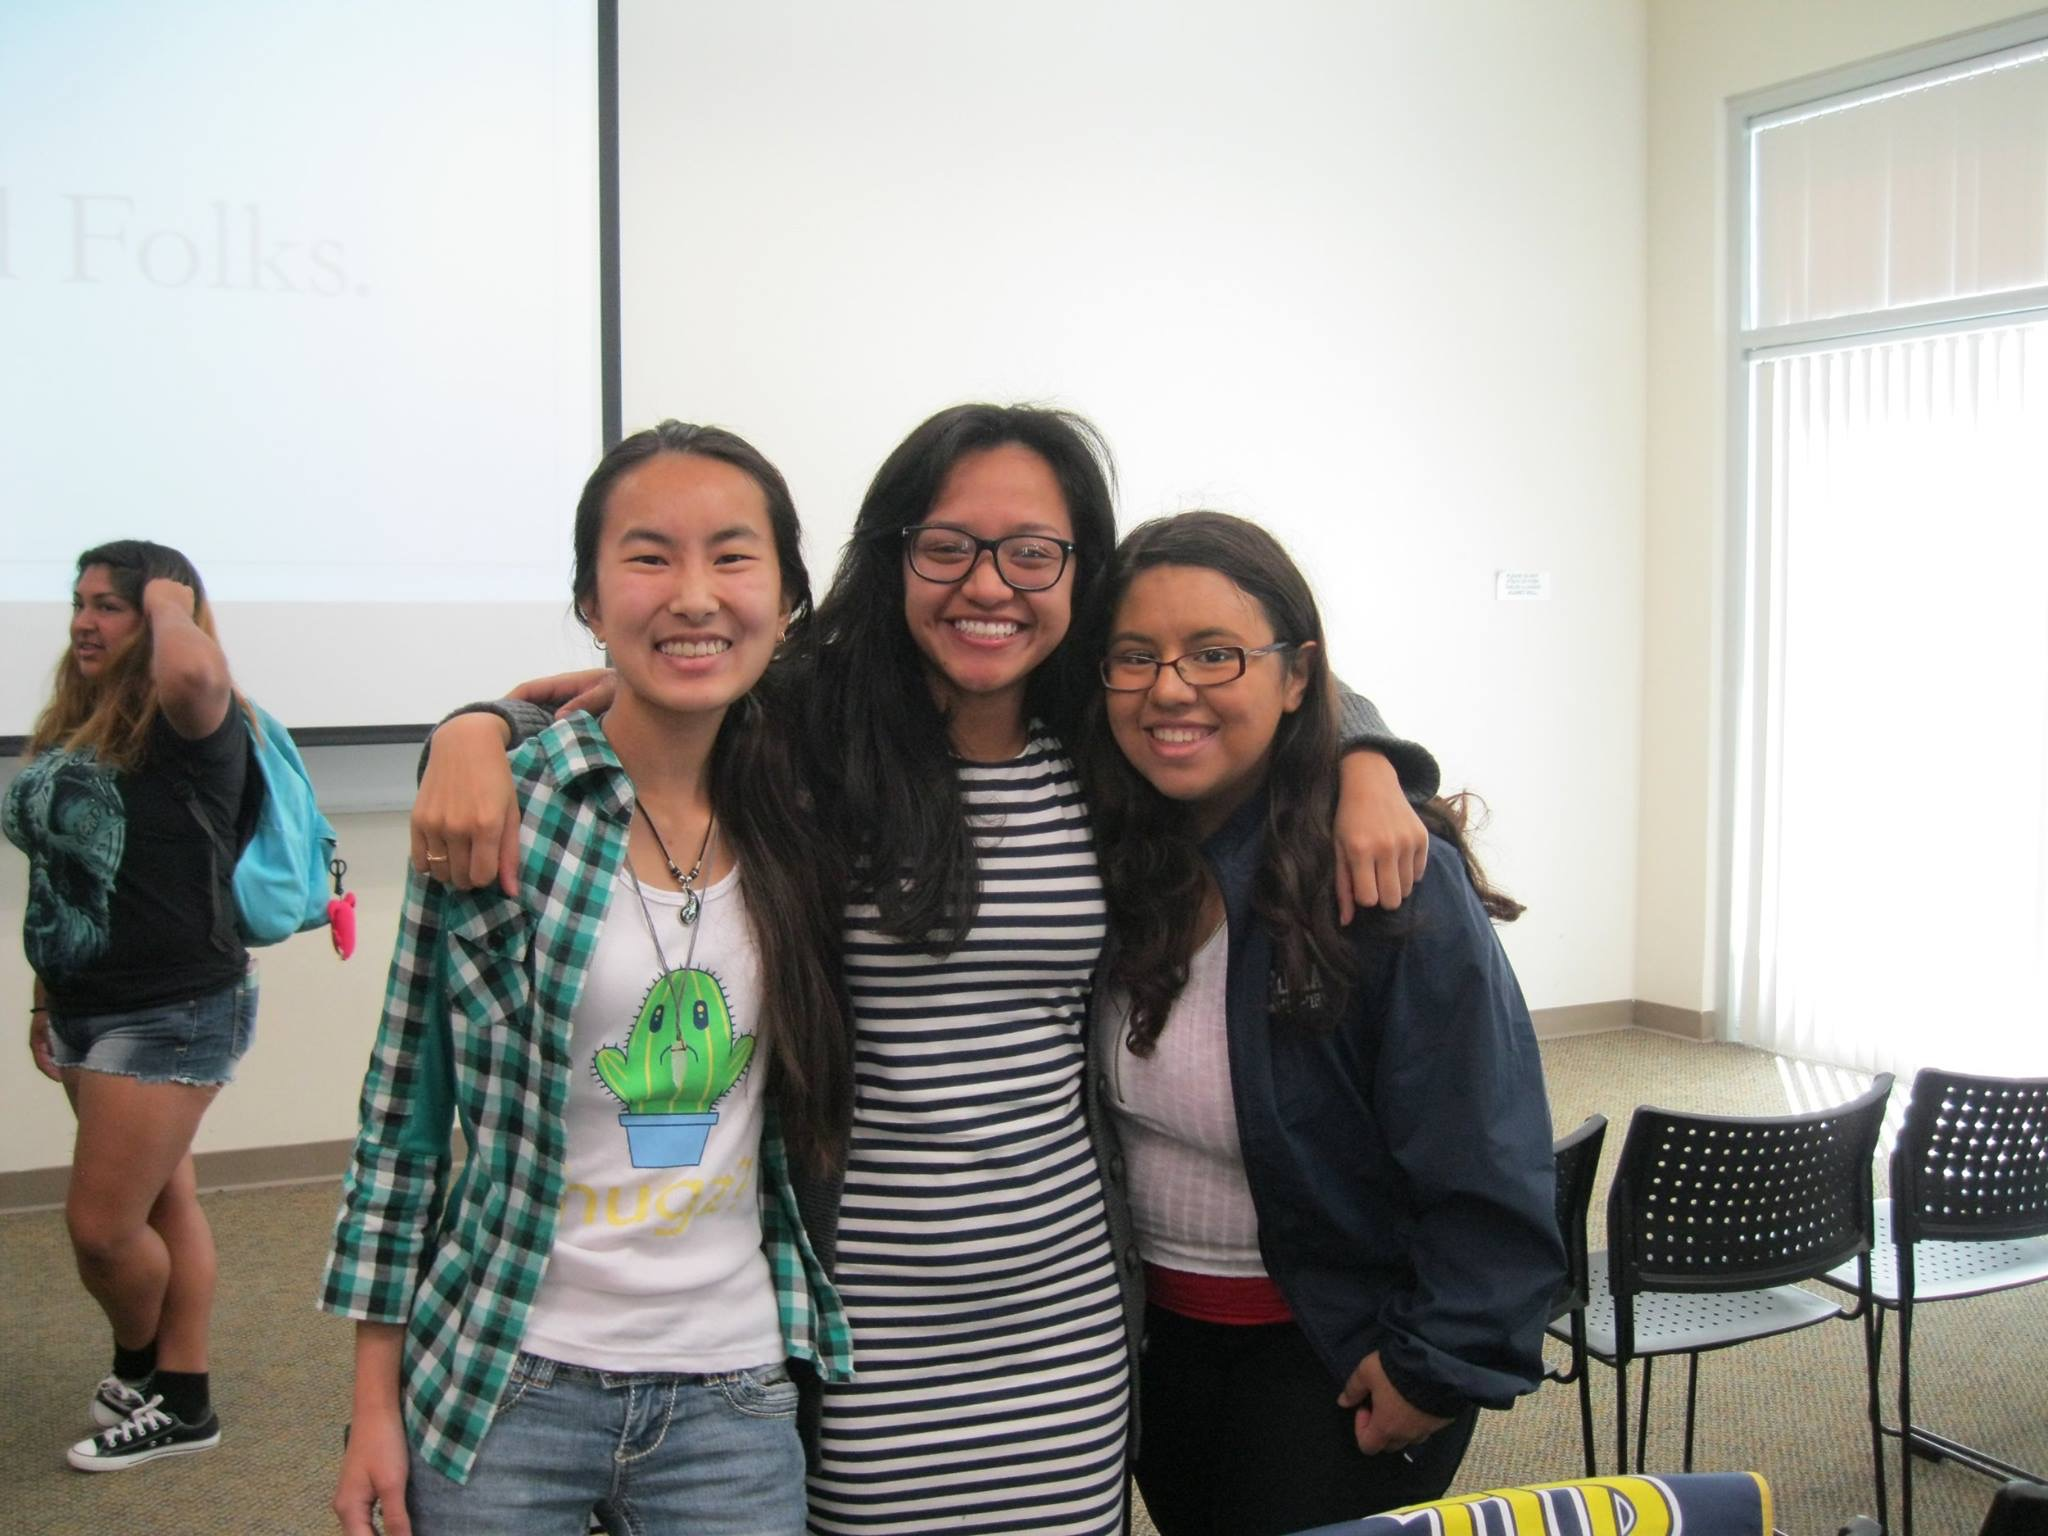 Meeting new TRIO Scholars with TRIO Workshops!